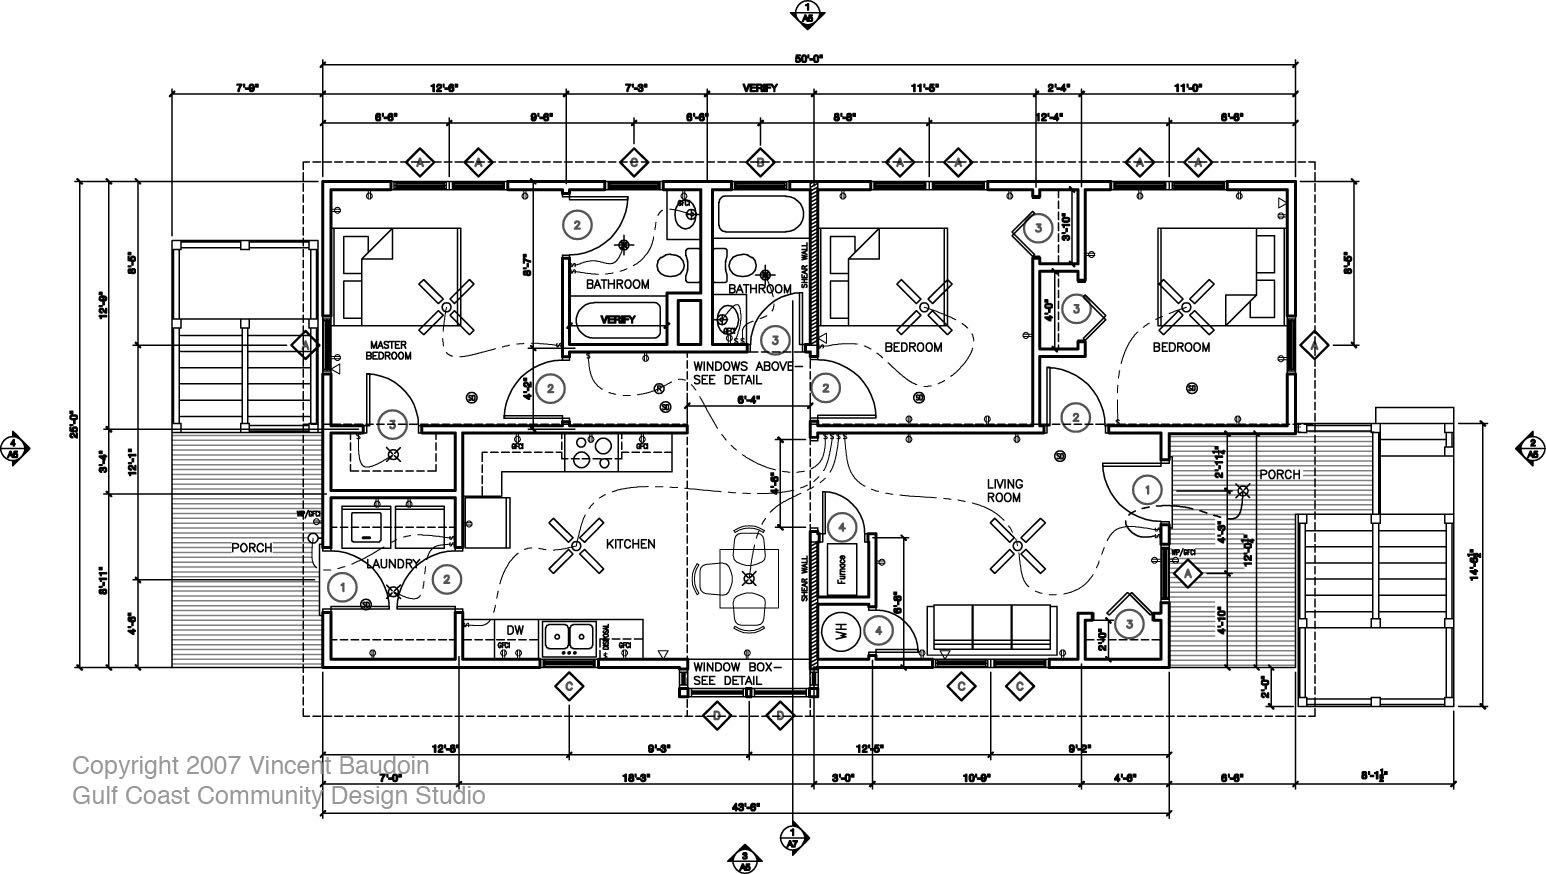 Residential house plans floor plans for Residential building plans